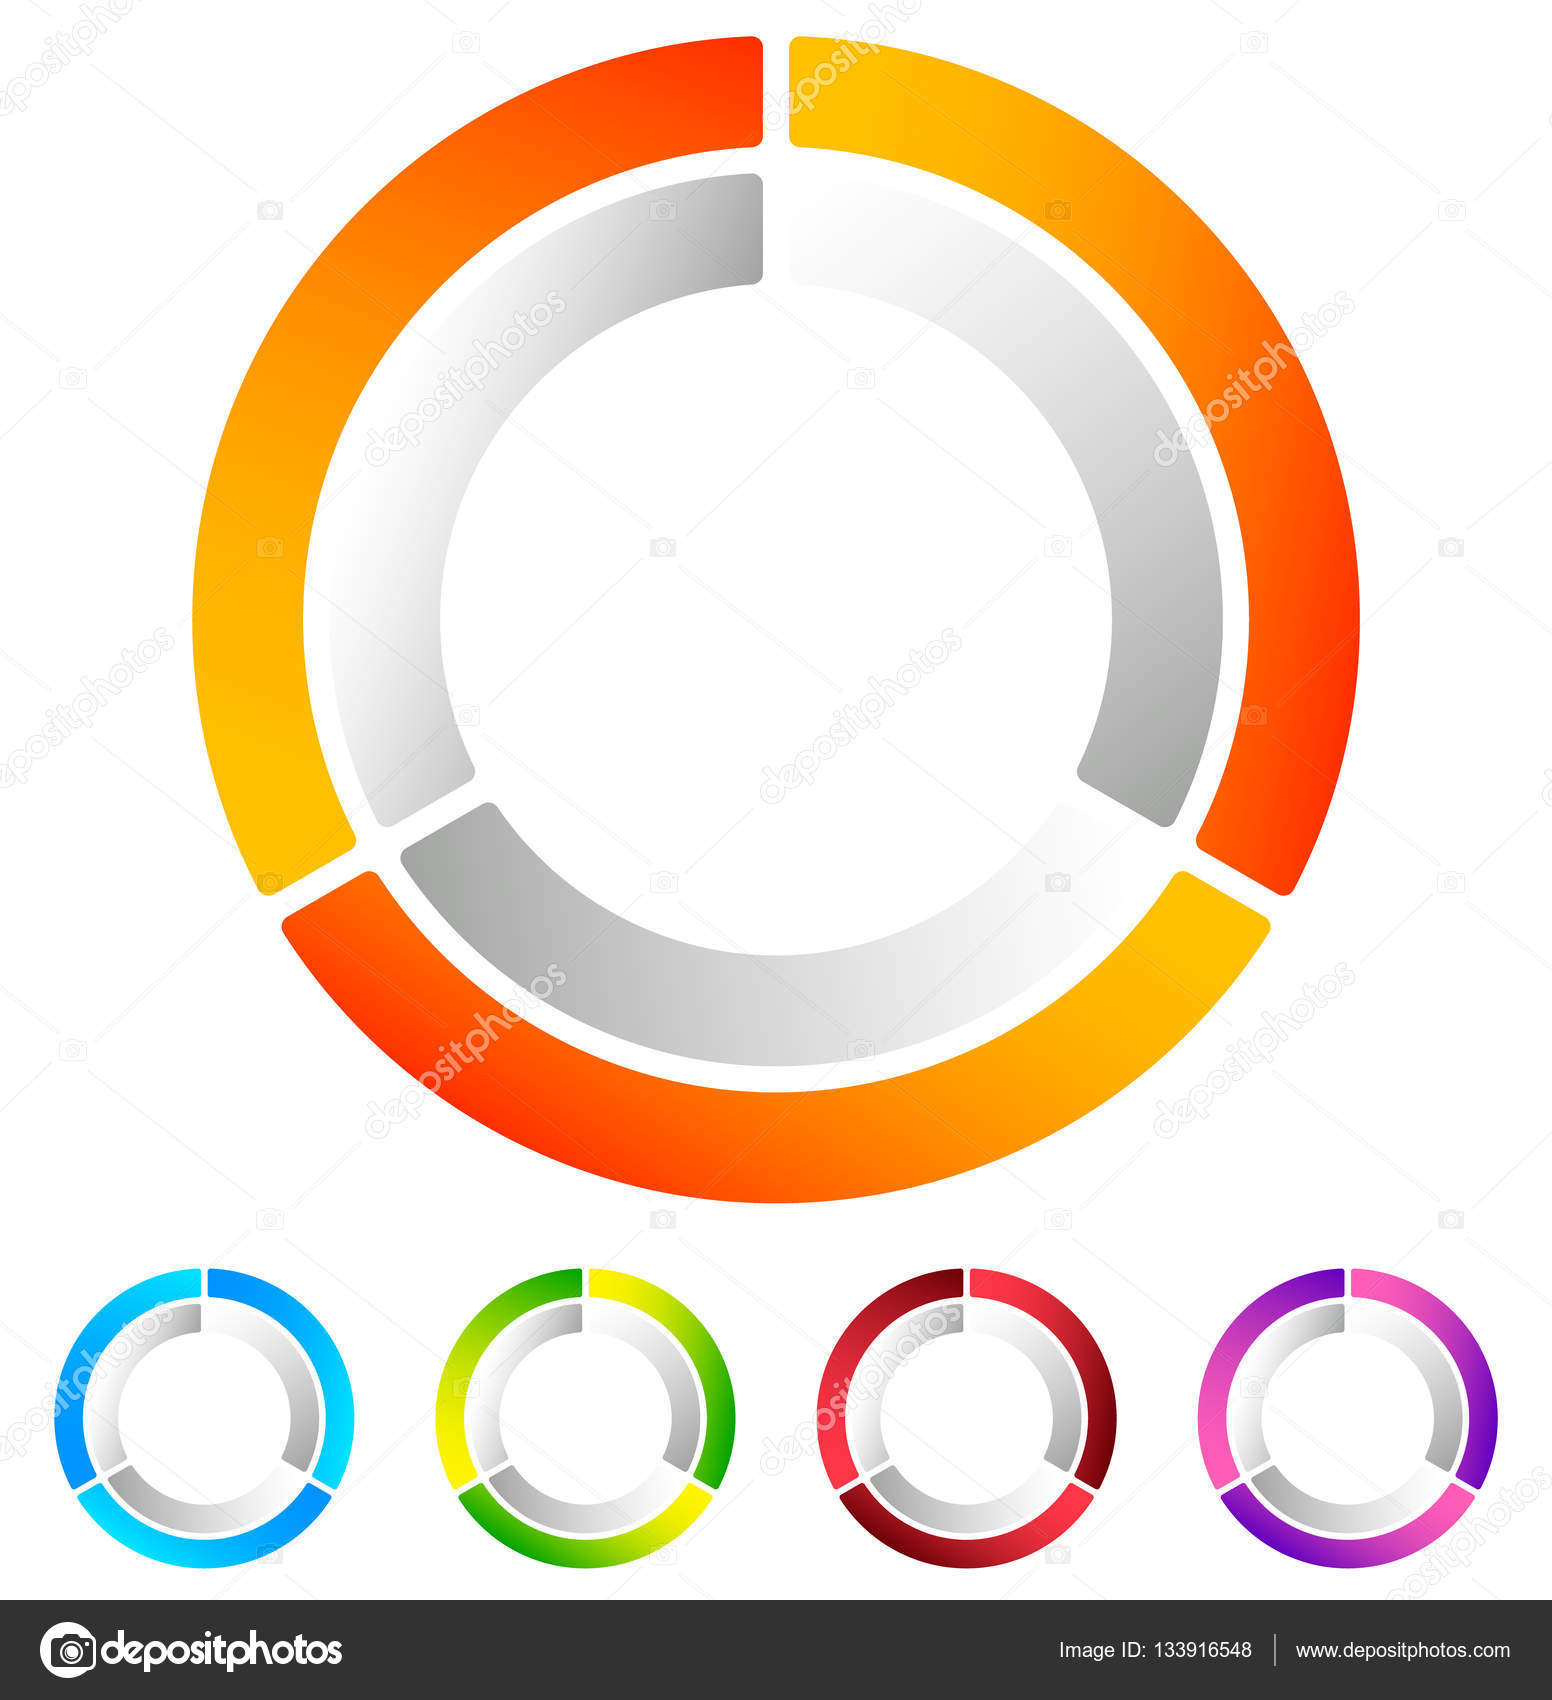 Segmented circle abstract icons stock vector vectorguy 133916548 segmented circle abstract icons circular geometric logo icon in 4 colors concentric circles ring element vector by vectorguy pooptronica Choice Image